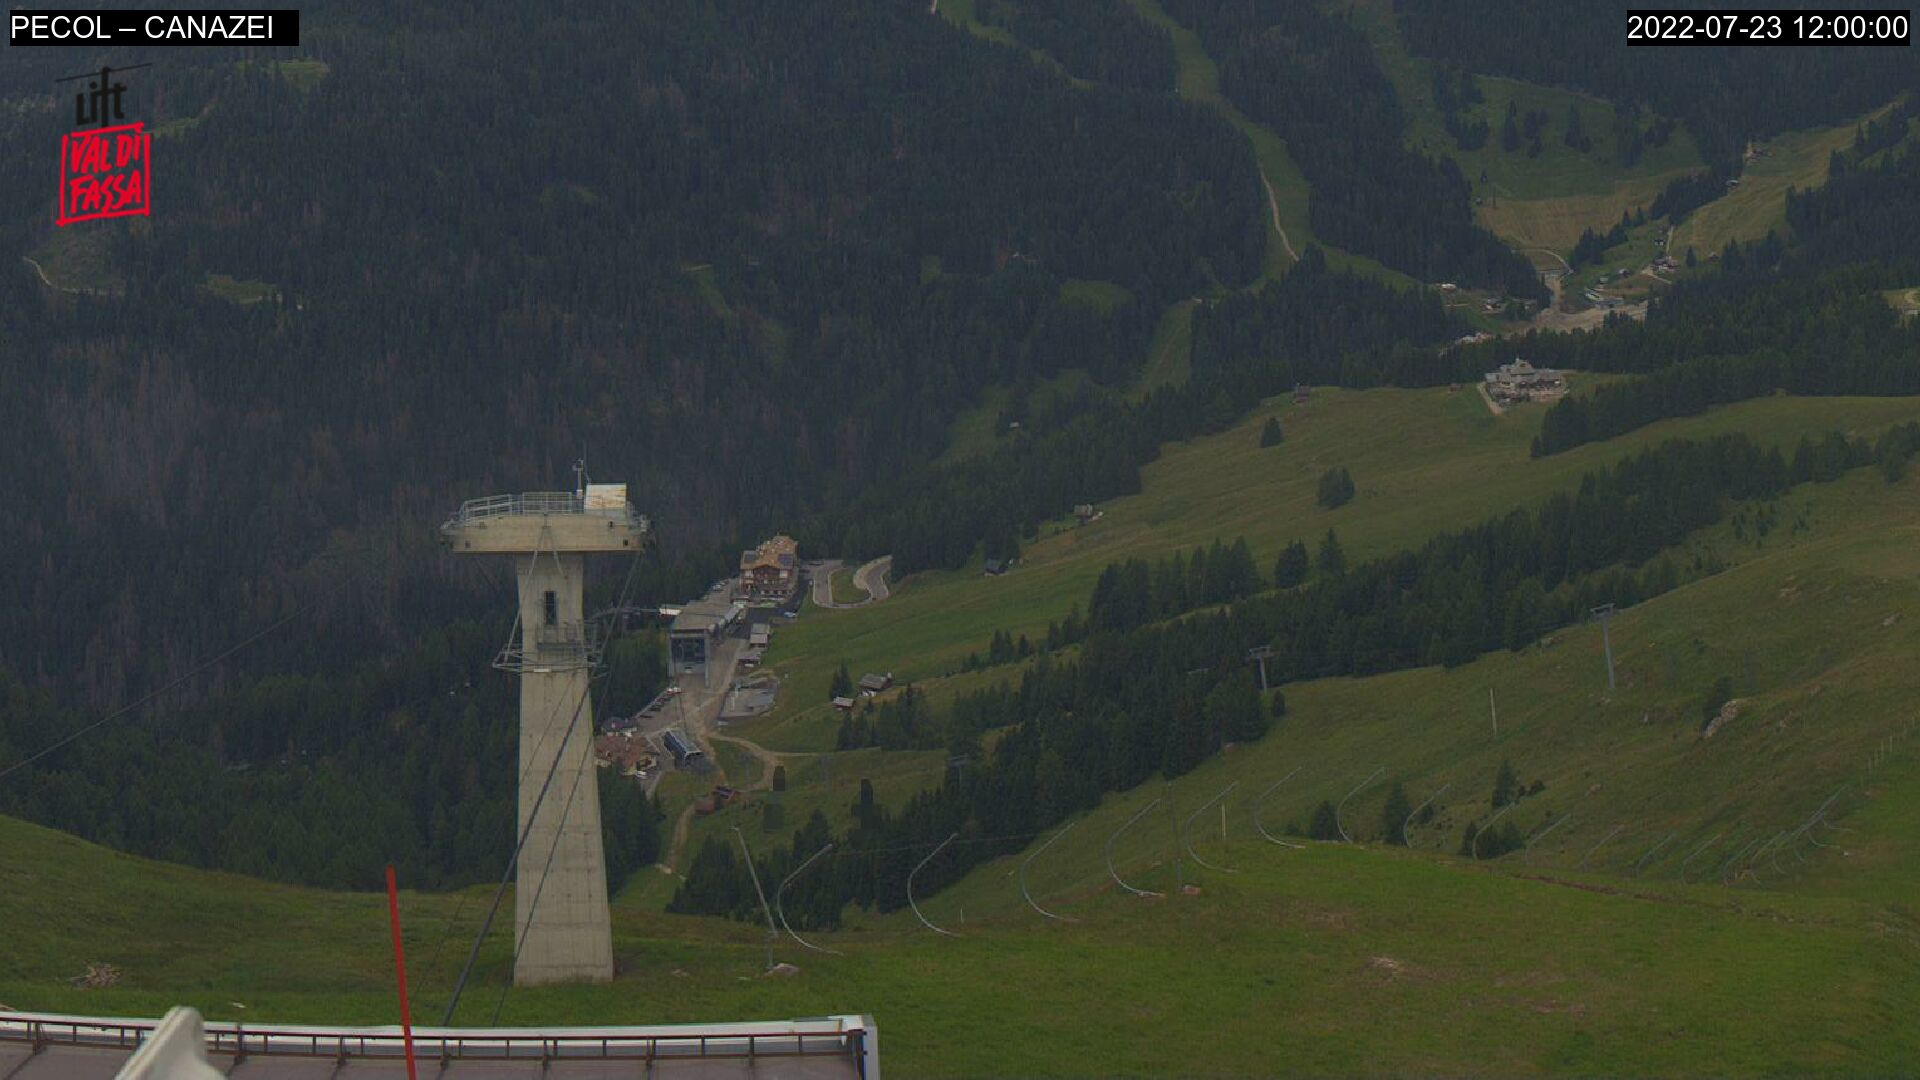 Webcam Canazei - Belvedere - Altitude: 2,413 metresArea: Col dei RossiPanoramic viewpoint: static webcam. View down on